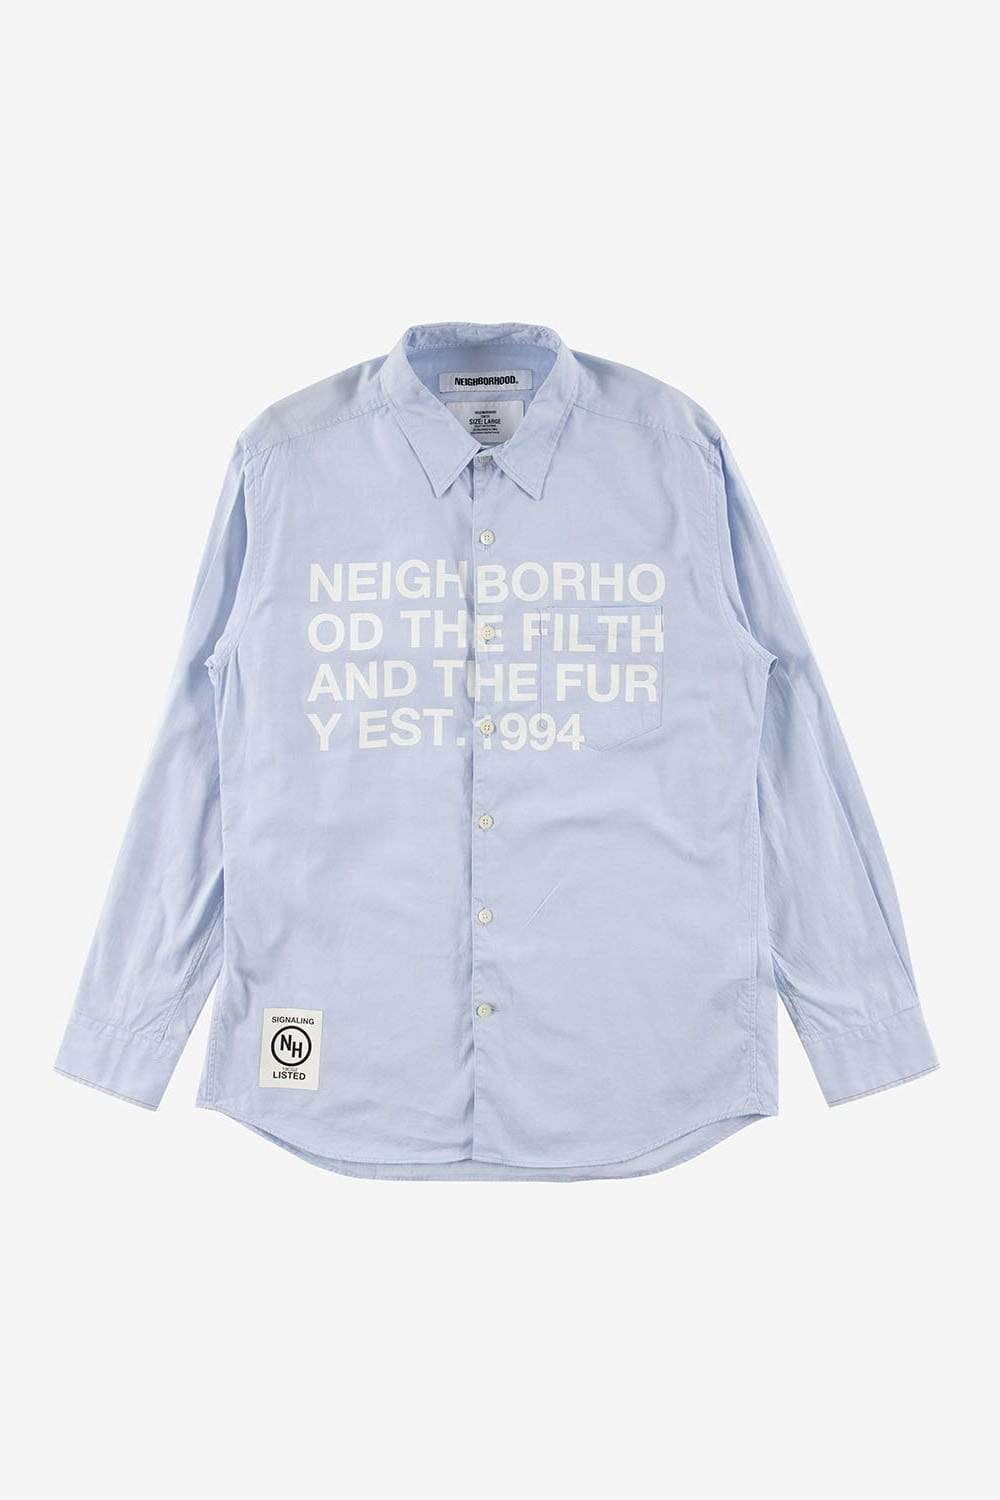 Neighborhood Apparel Design 1 Long Sleeve Shirt